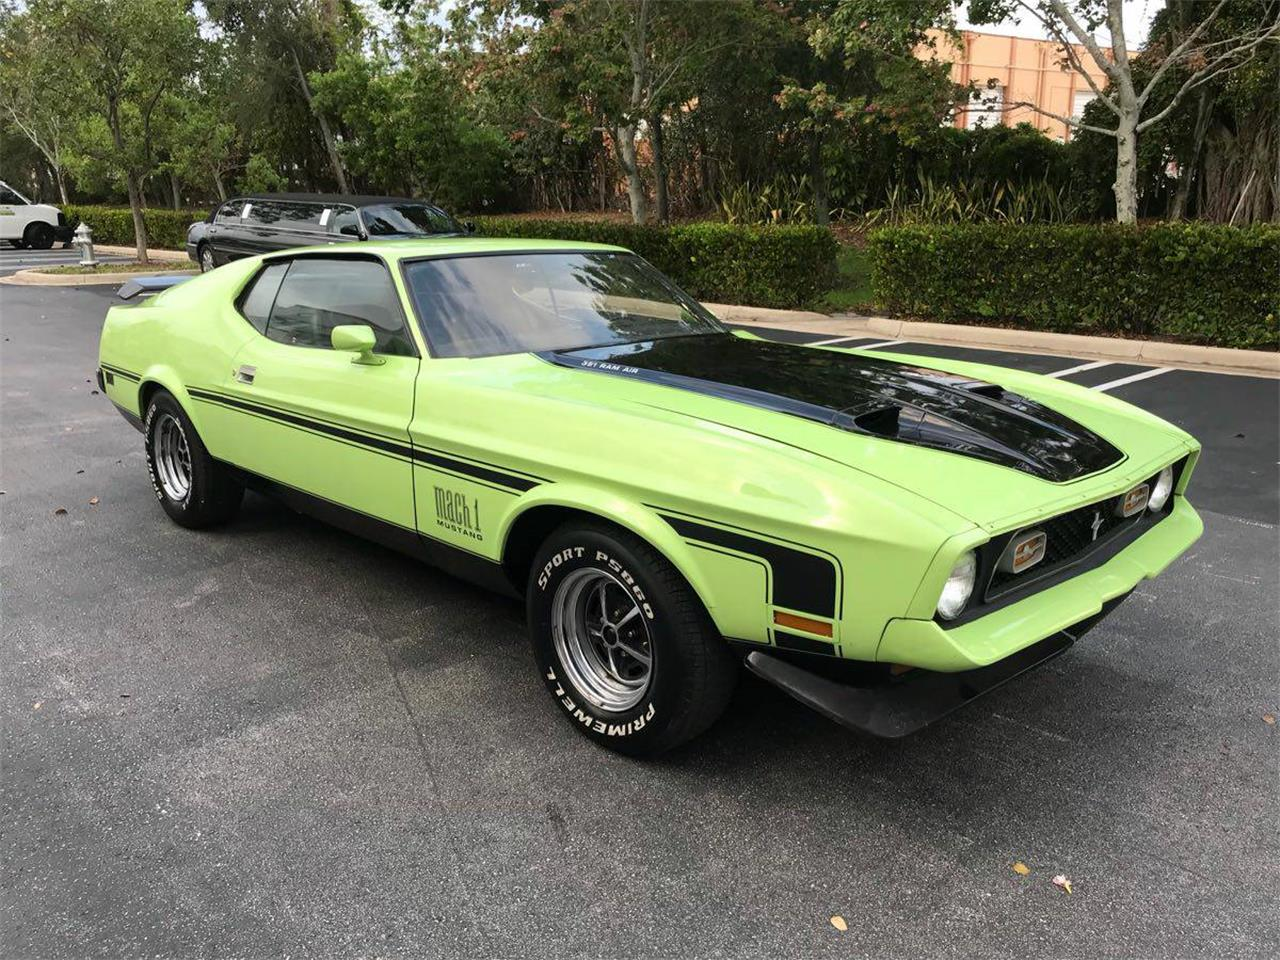 1971 Ford Mustang Mach 1 for Sale | ClassicCars.com | CC-1089643